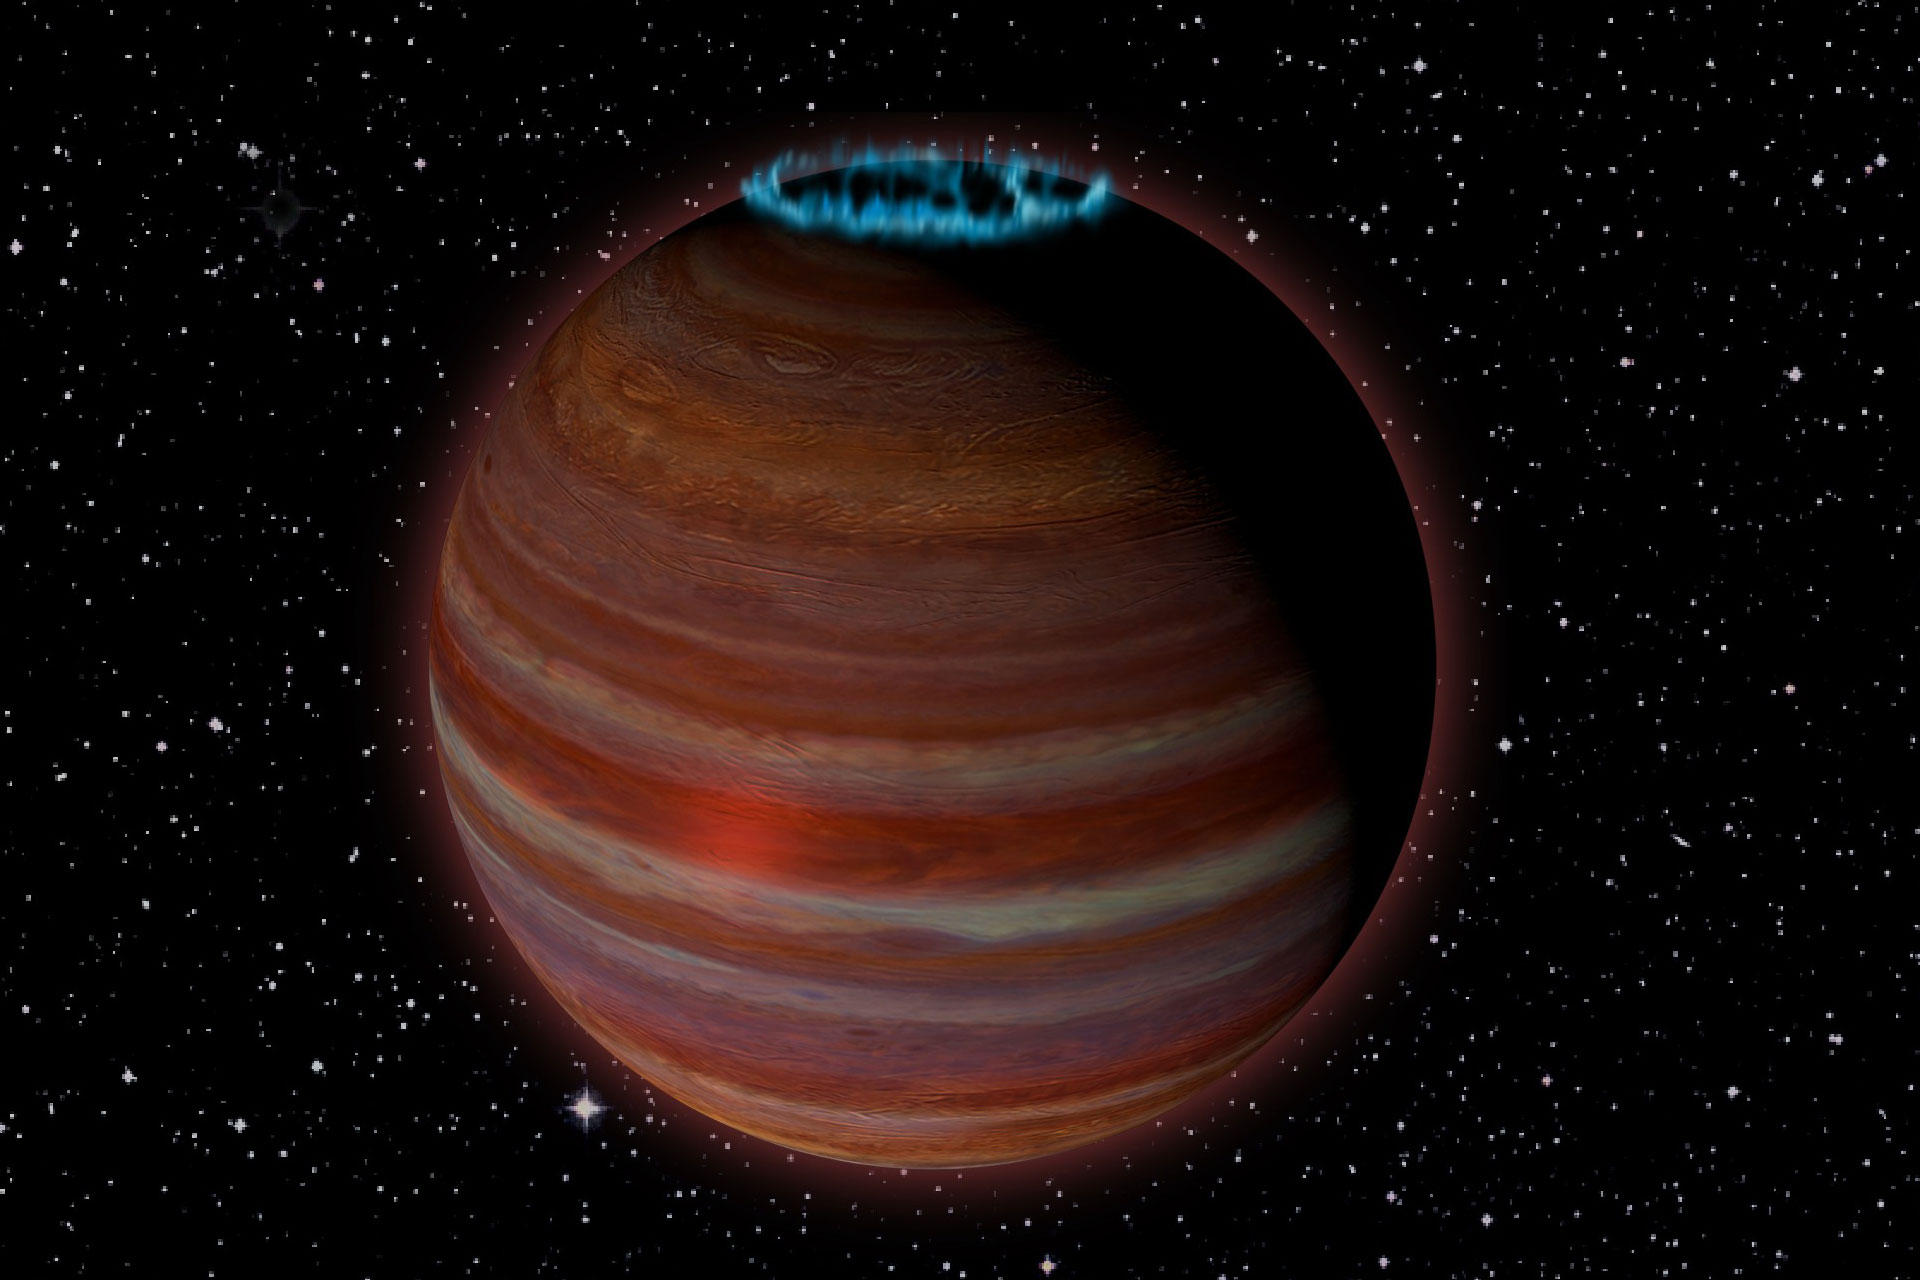 Bizarre Rogue 'Planet' with Incredible Auroras Puzzles Scientists